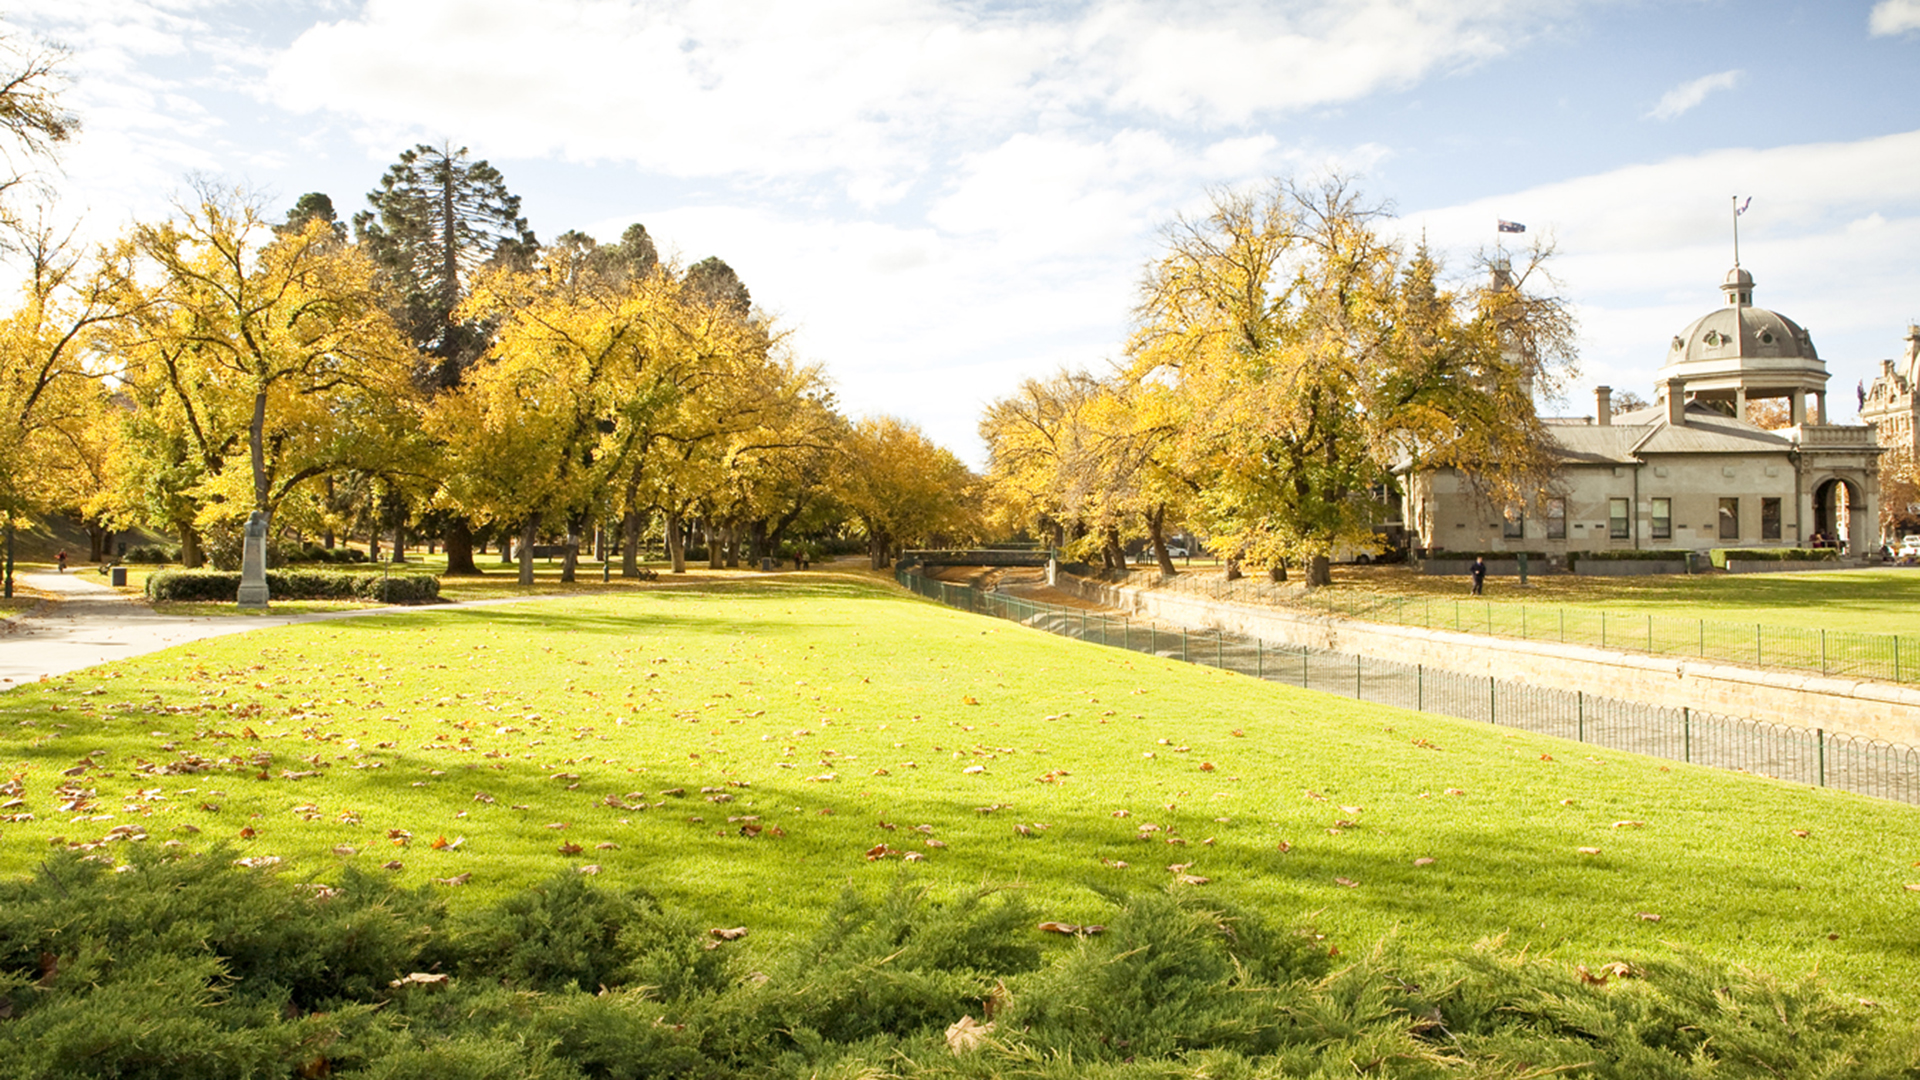 Rosalind Park in autumn